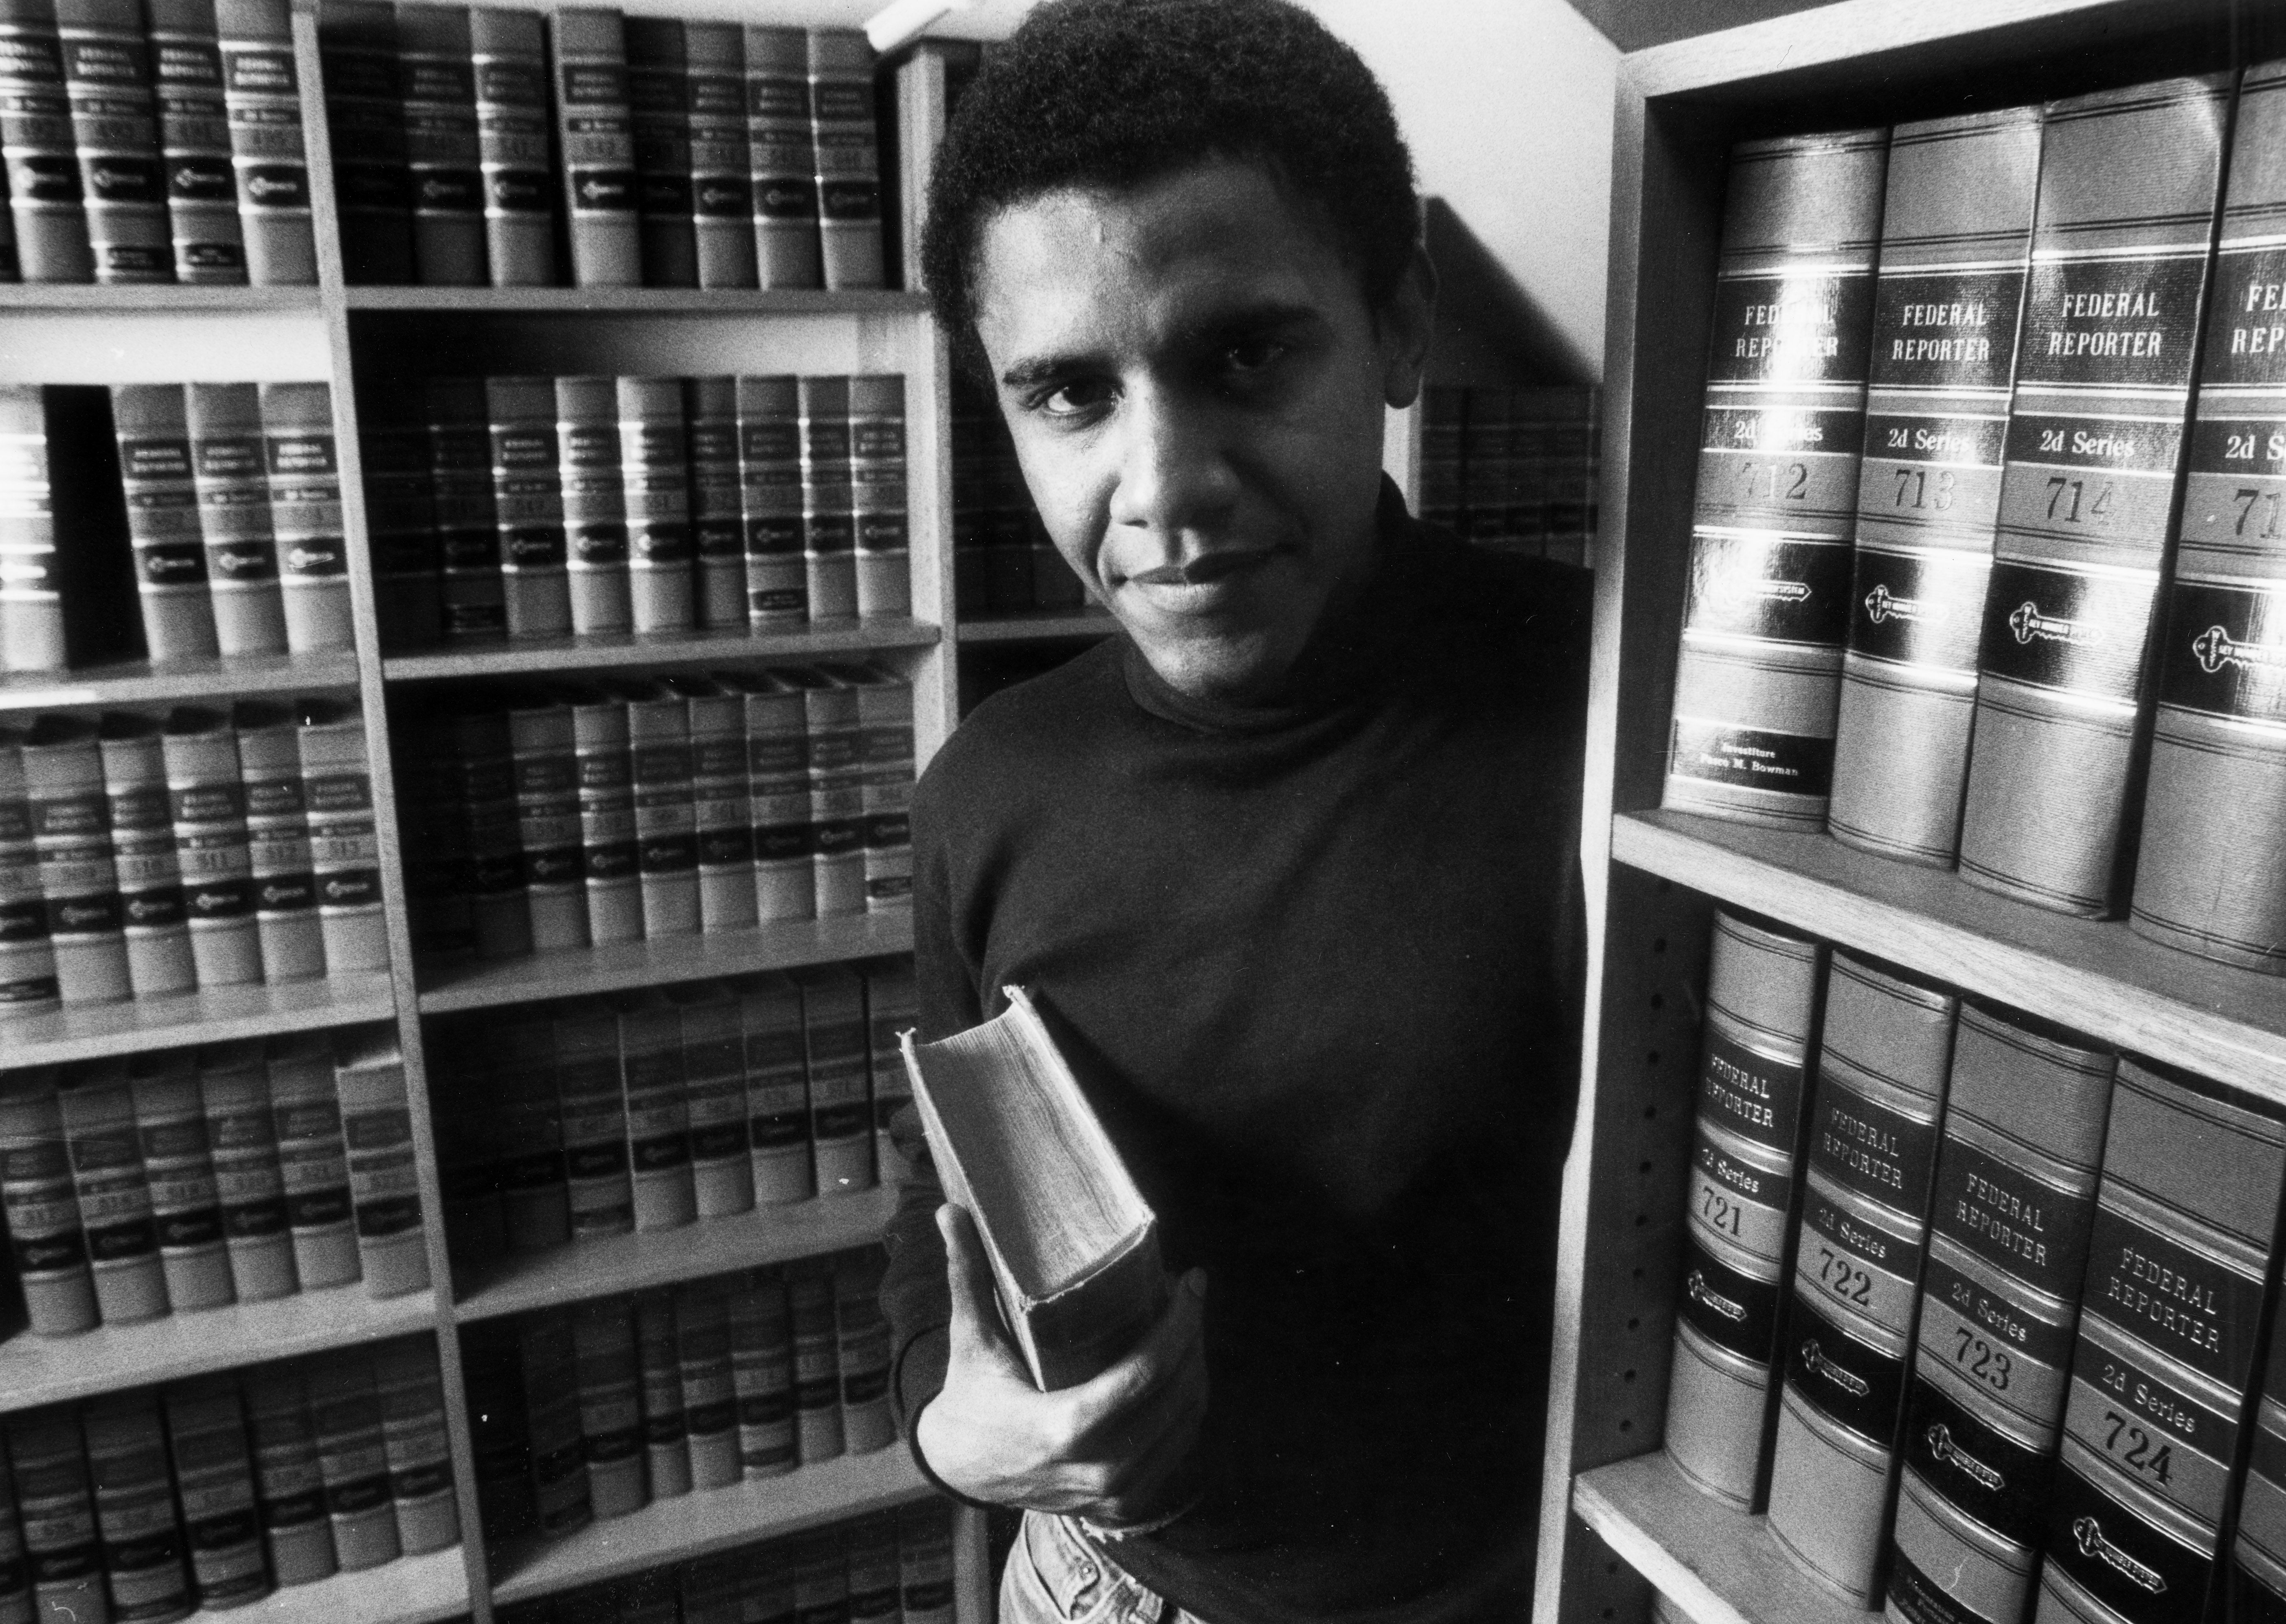 Obama poses in the Harvard Law Review offices on February 5, 1990.